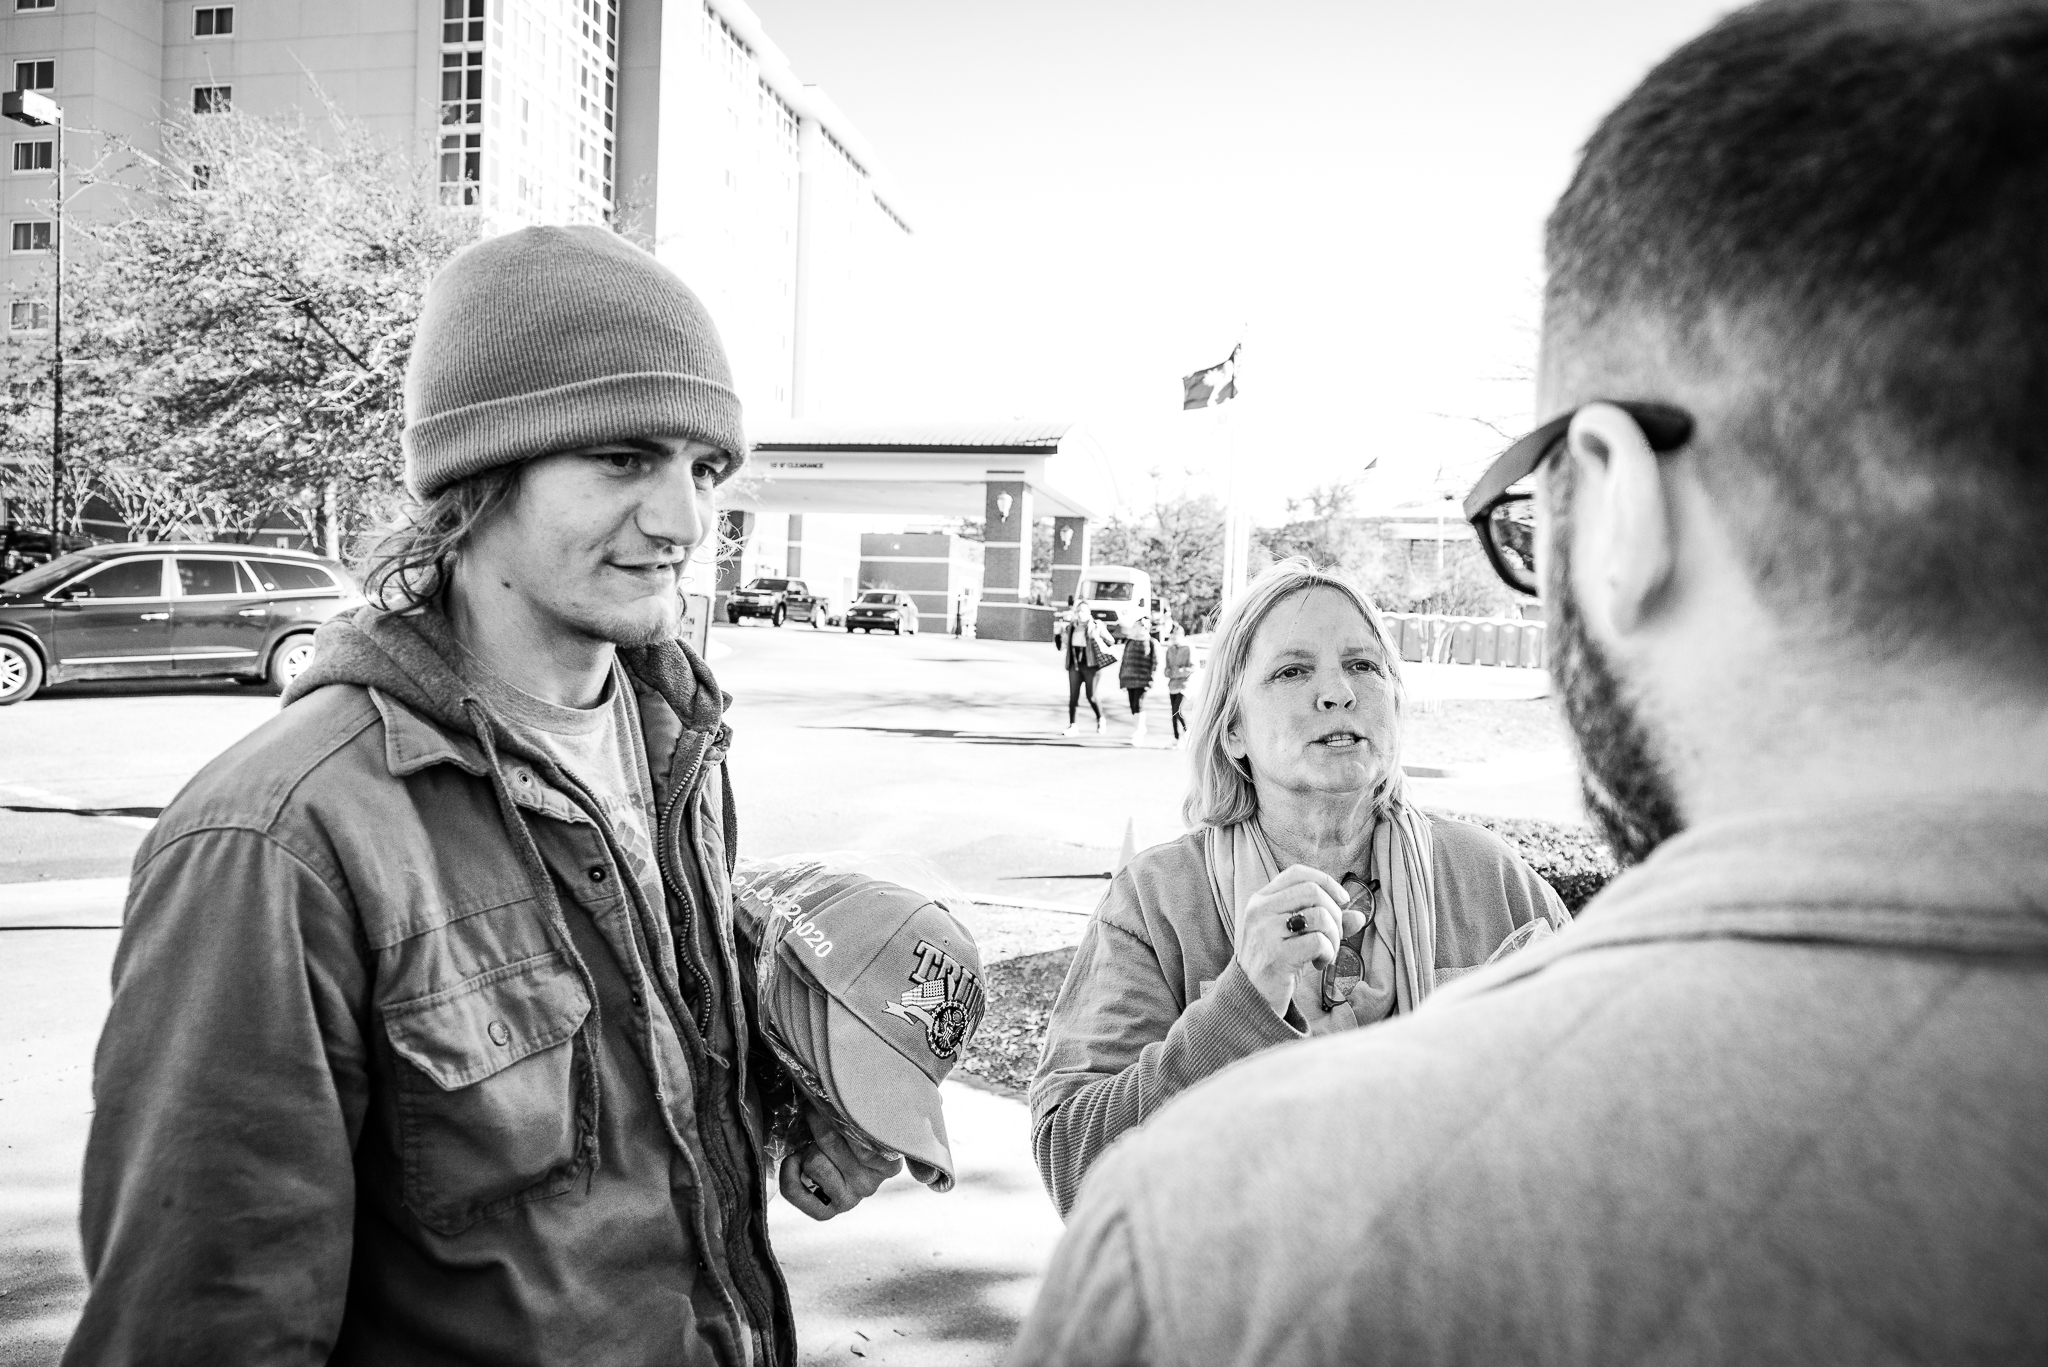 Reporter Miroslav Tomoski speaks to MAGA merchants, Tyler Tambasco and Angel Shaske, in North Charleston, South Carolina. Photo: Lance Monotone.